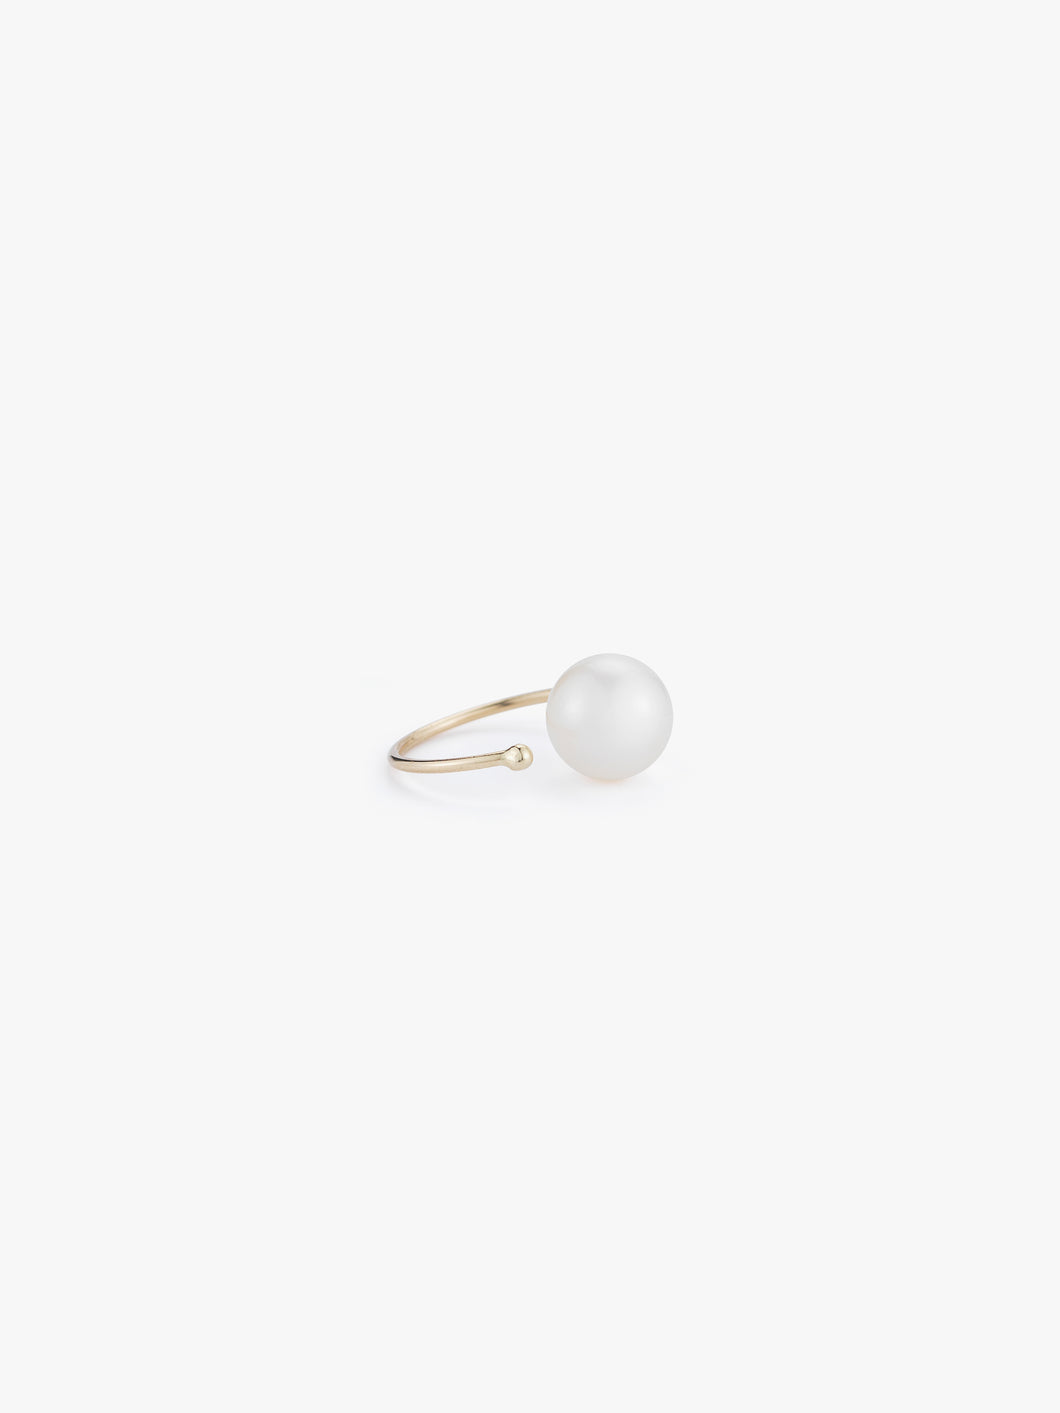 Sea of Beauty Collection.  Single White Pearl Ear Cuff  SBE163W